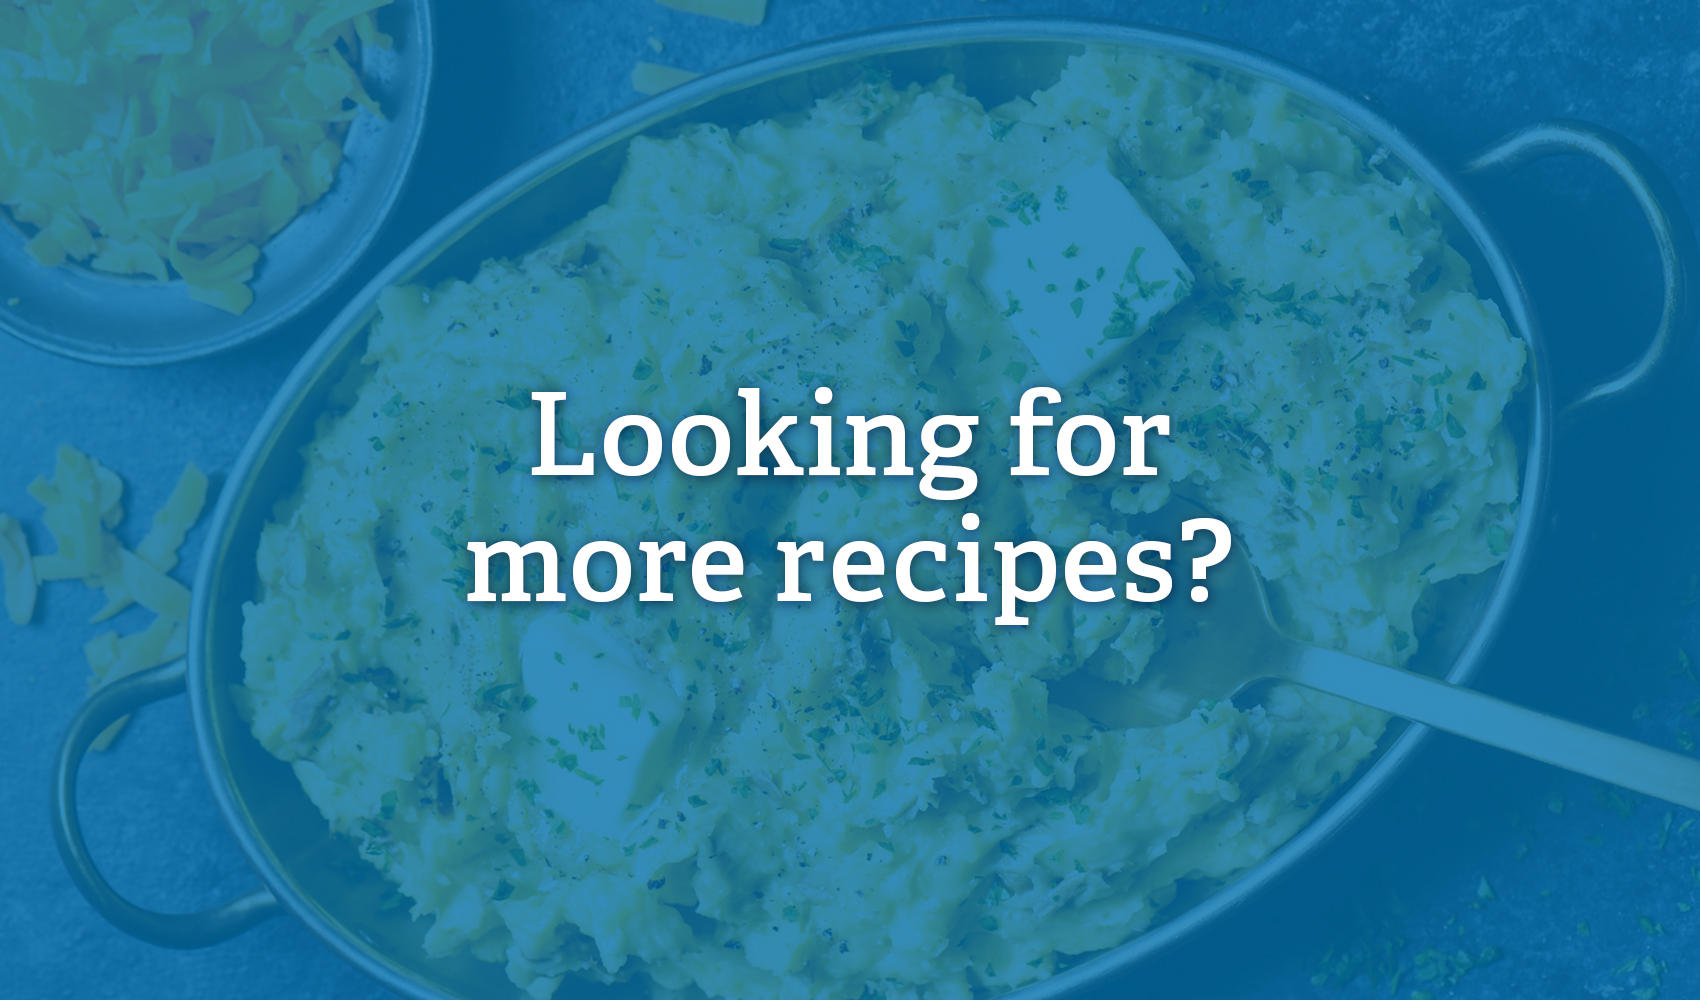 Check out our Recipe Roundup Series